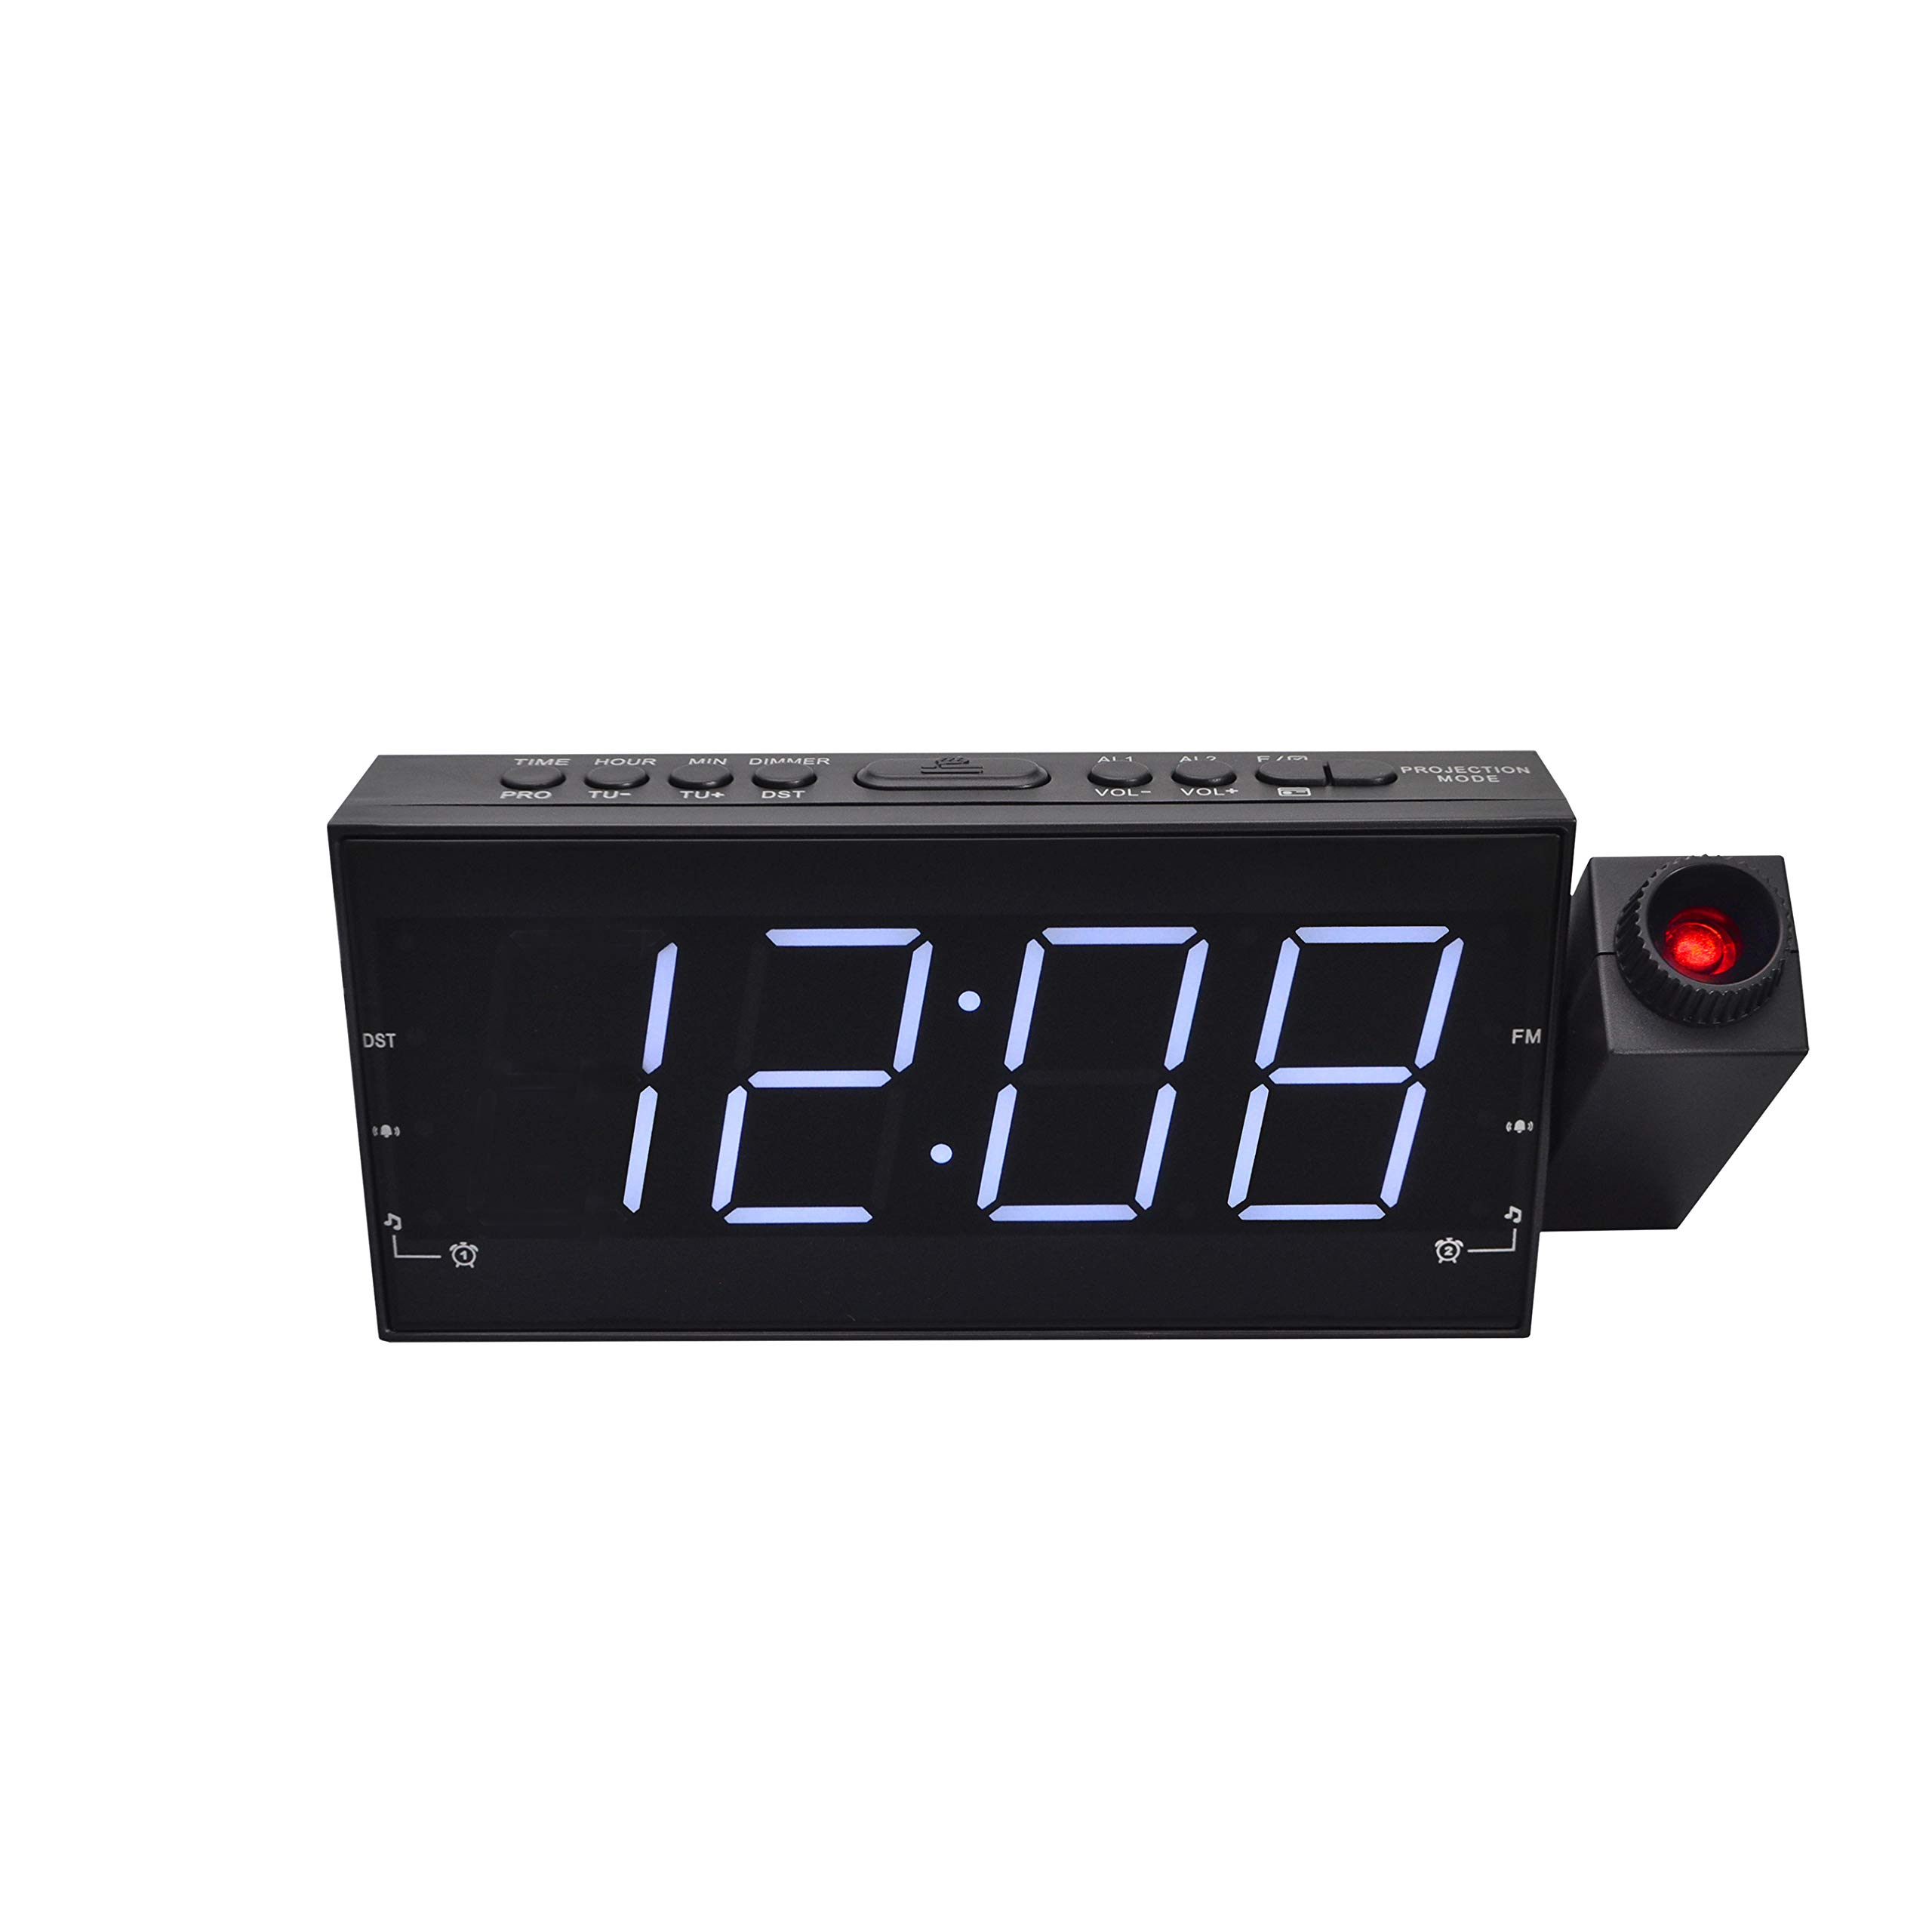 1A2BVV Dimmable Projection Alarm Clock Radio with 1.8'' white LED display, single USB charger, DC Battery Backup, Dual Alarm, Sleep Timer,Snooze (PCR-2159)